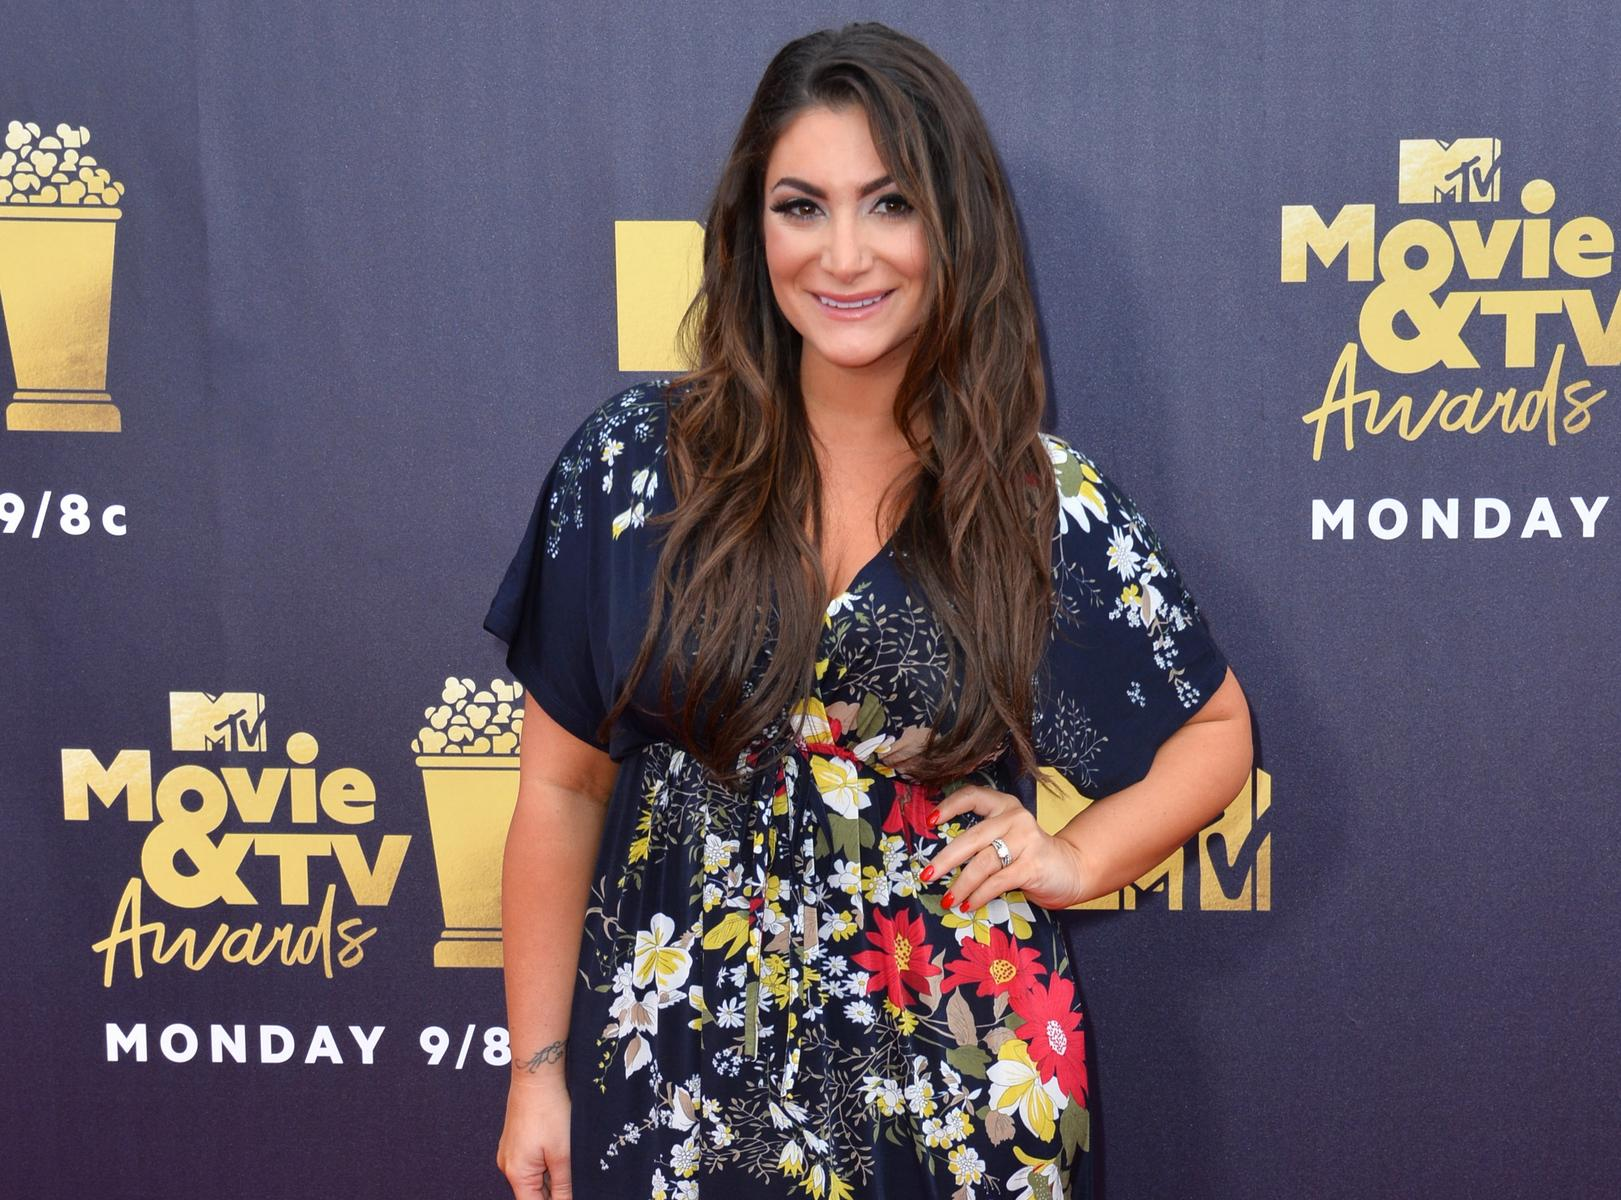 Baby Boy on the Way for Jersey Shore's Deena Cortese